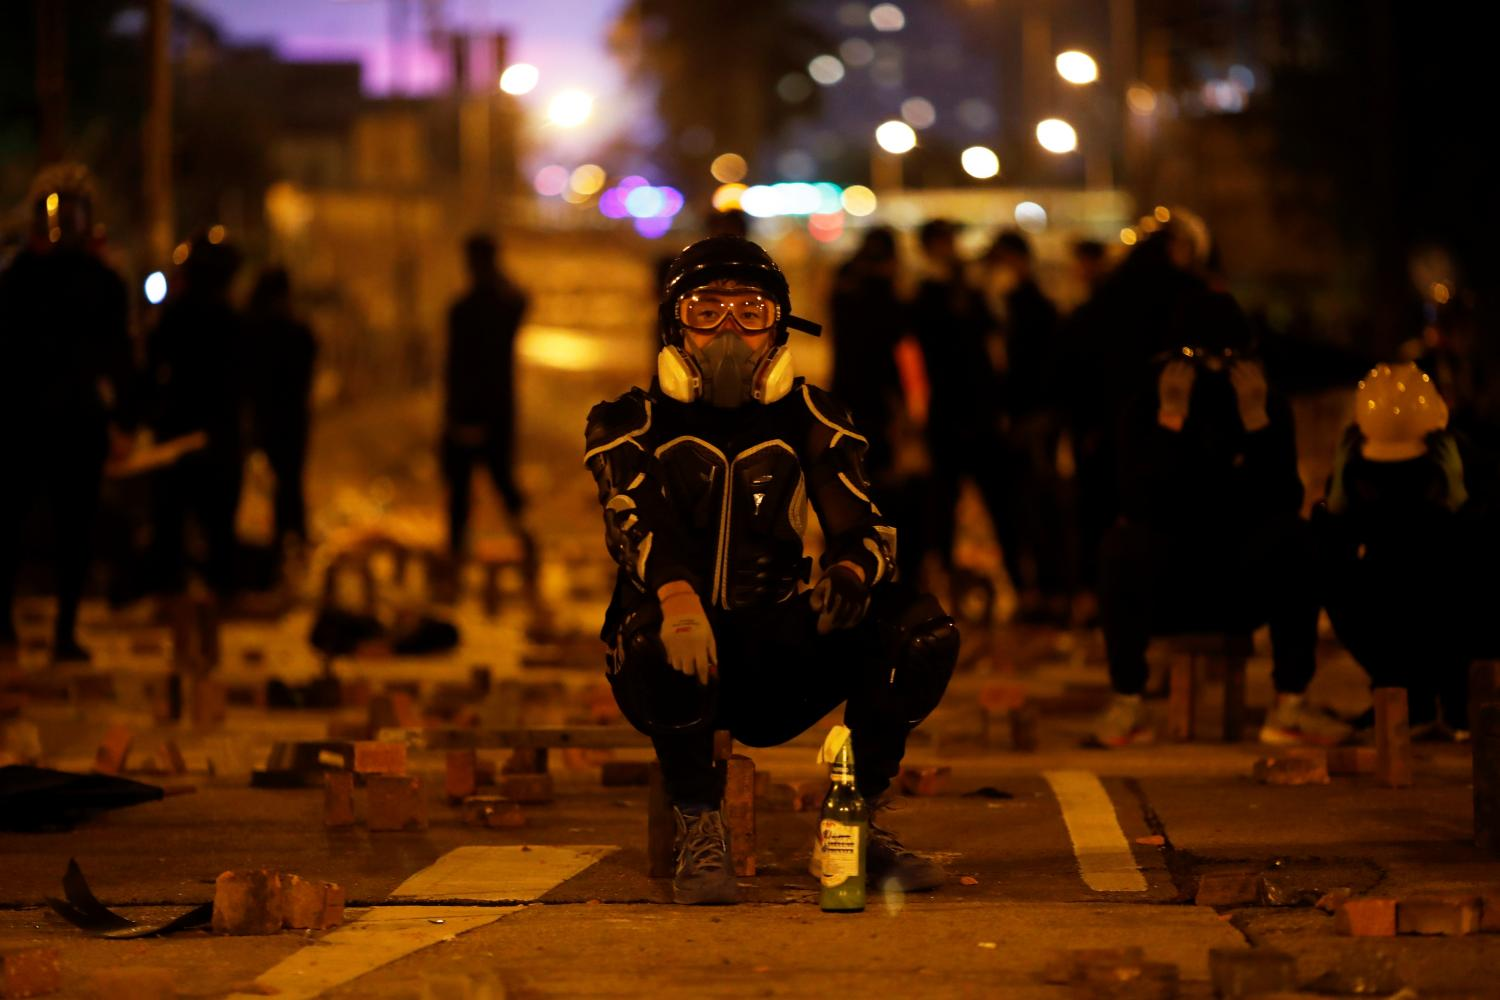 An anti-government protester is seen during clashes with police near the Polytechnic University in Hong Kong, China on Saturday.REUTERS